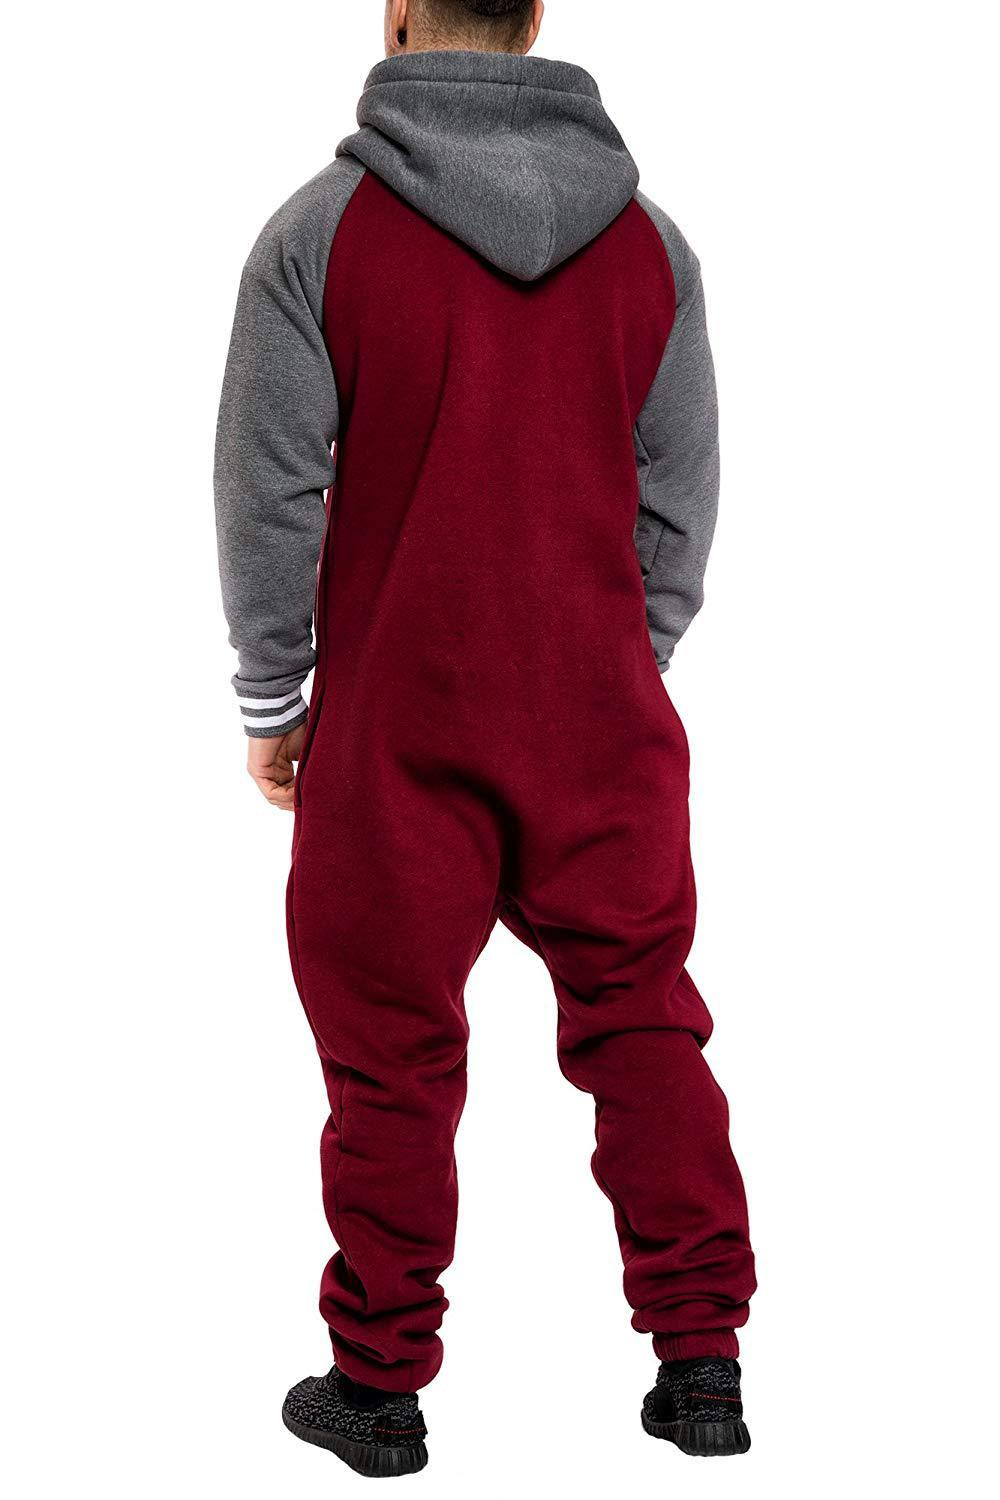 Casual Autumn Hooded Tracksuit Jumpsuit Long Pants Romper For Male Mens Fleece warm Overalls Sweatshirts Male Streetwear X9126 18